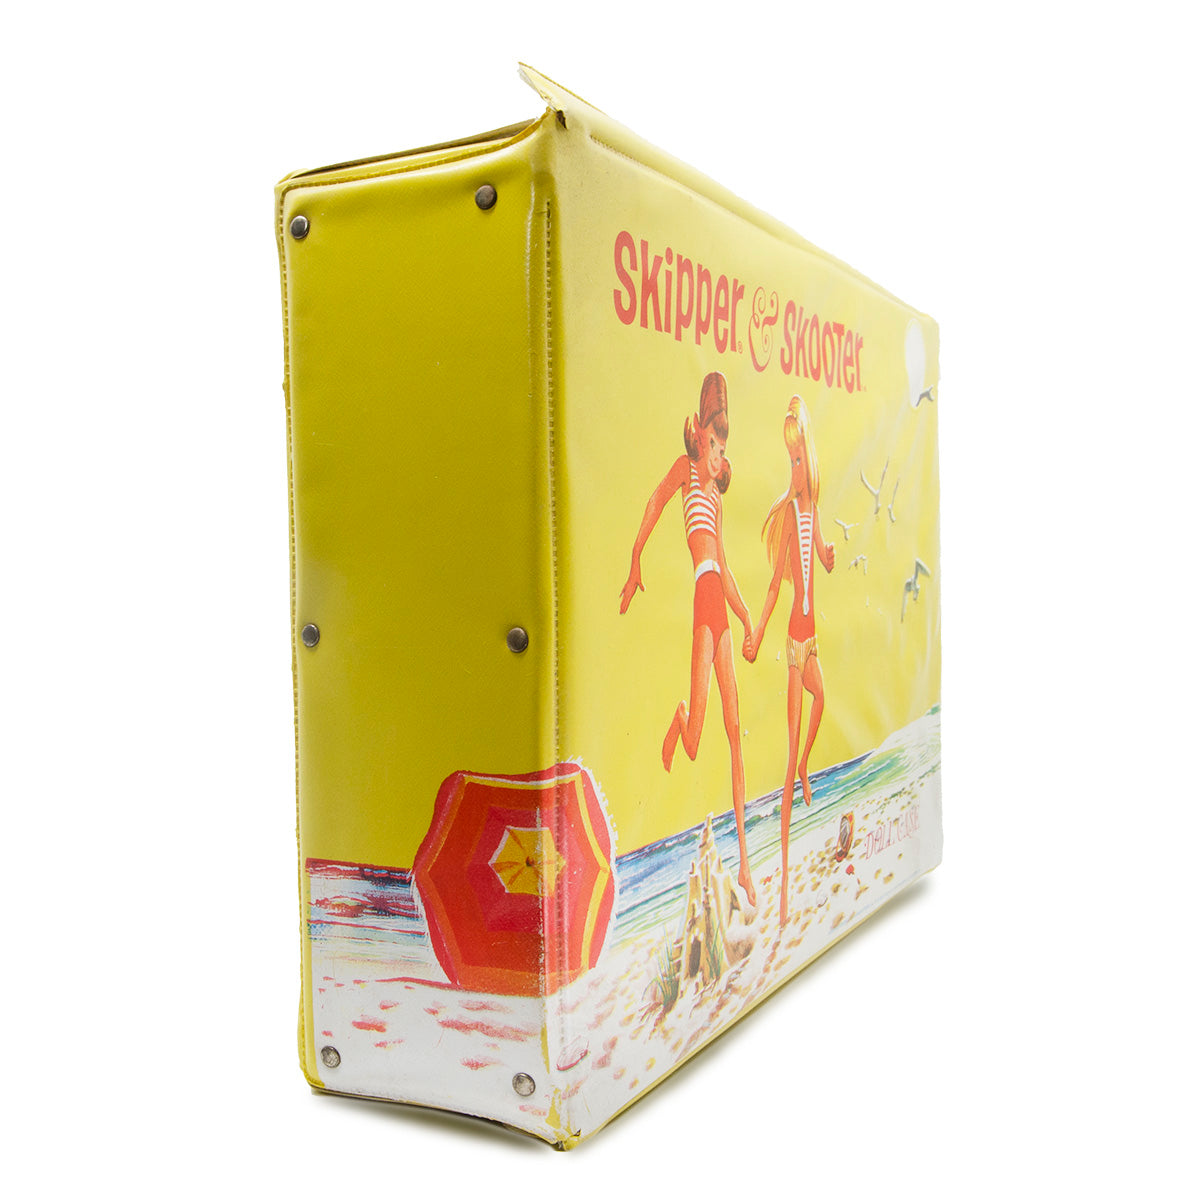 Skipper doll accessories, yellow trunk, yellow carrying case